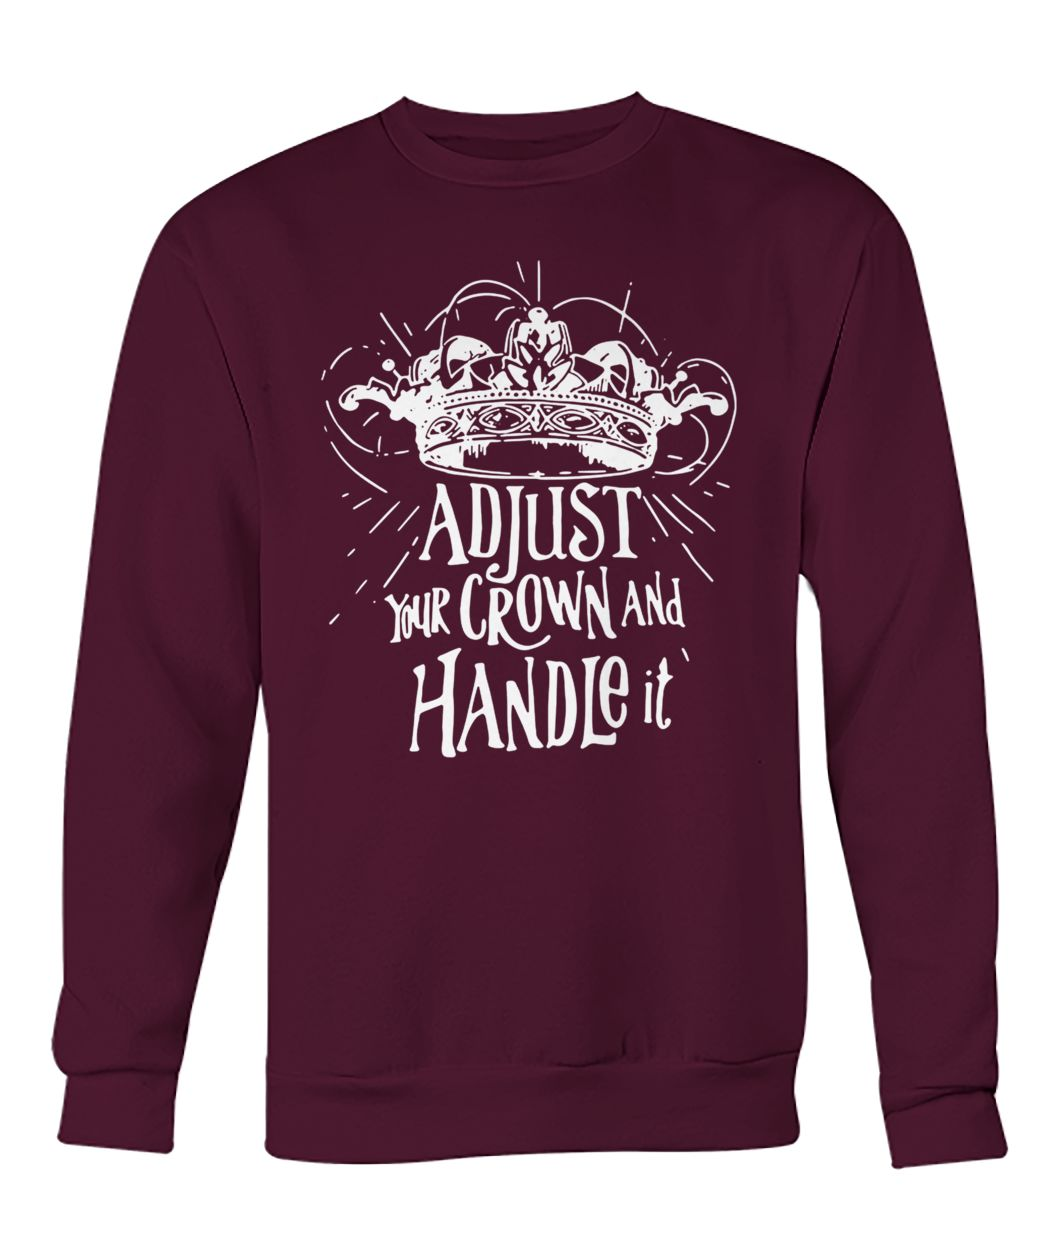 Adjust your crown and handle it crew neck sweatshirt